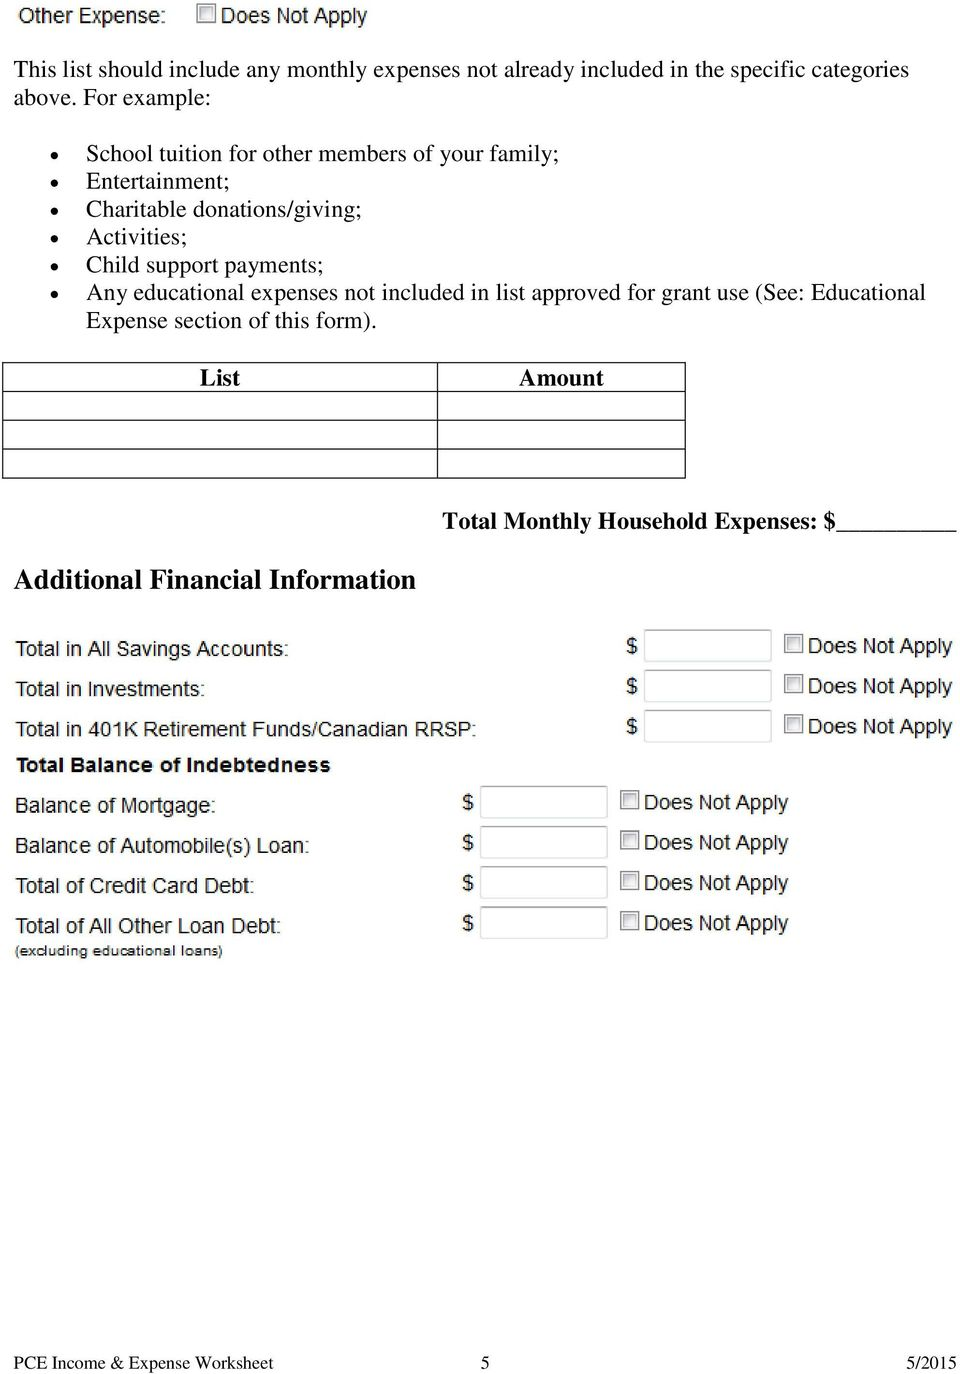 worksheet Adjusted Qualified Education Expenses Worksheet pce pre application income and expense worksheet pdf child support payments any educational expenses not included in list approved for grant use